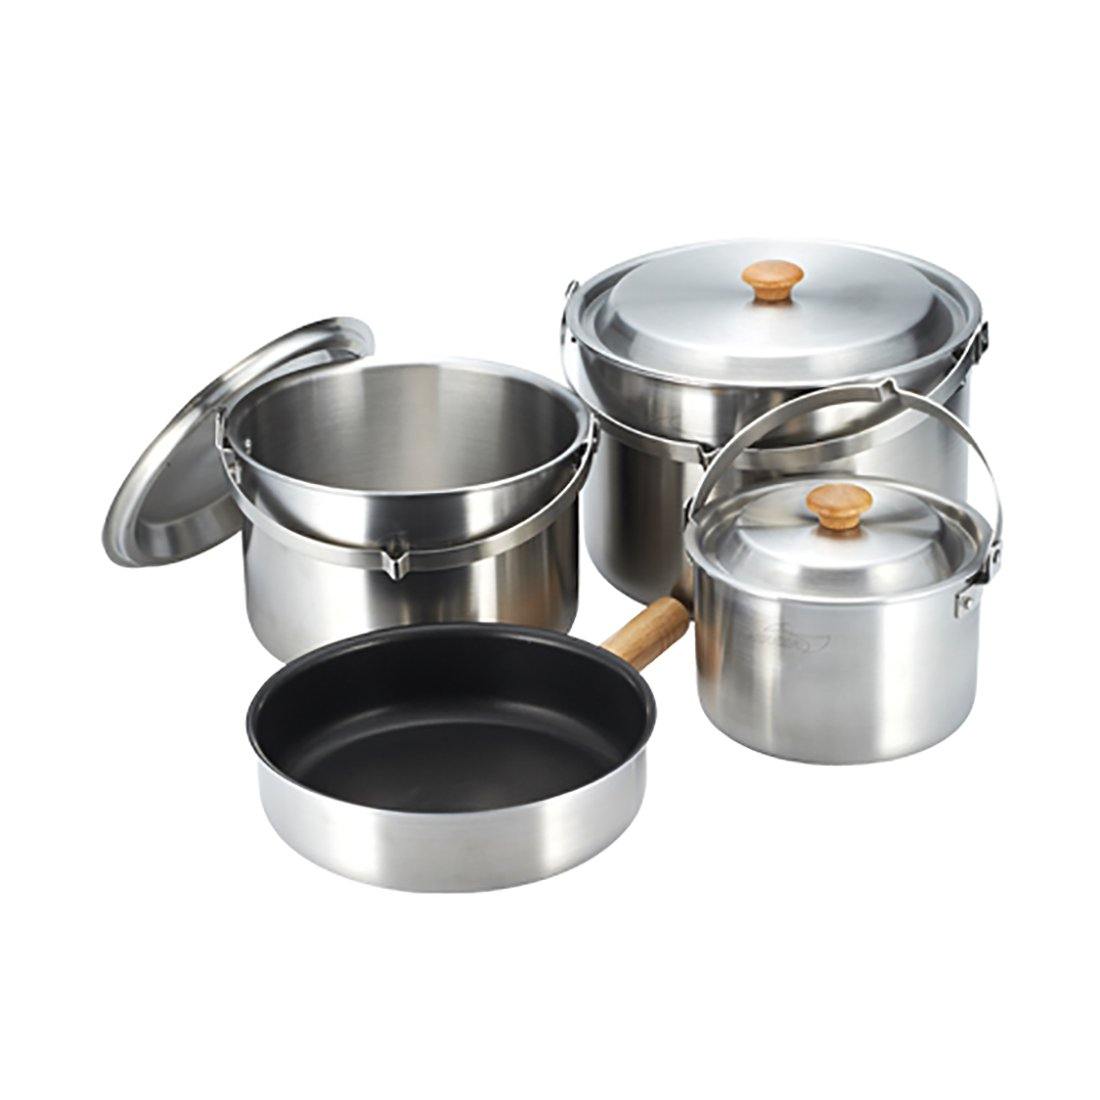 Kovea Triple Stainless Cookware L by Kovea